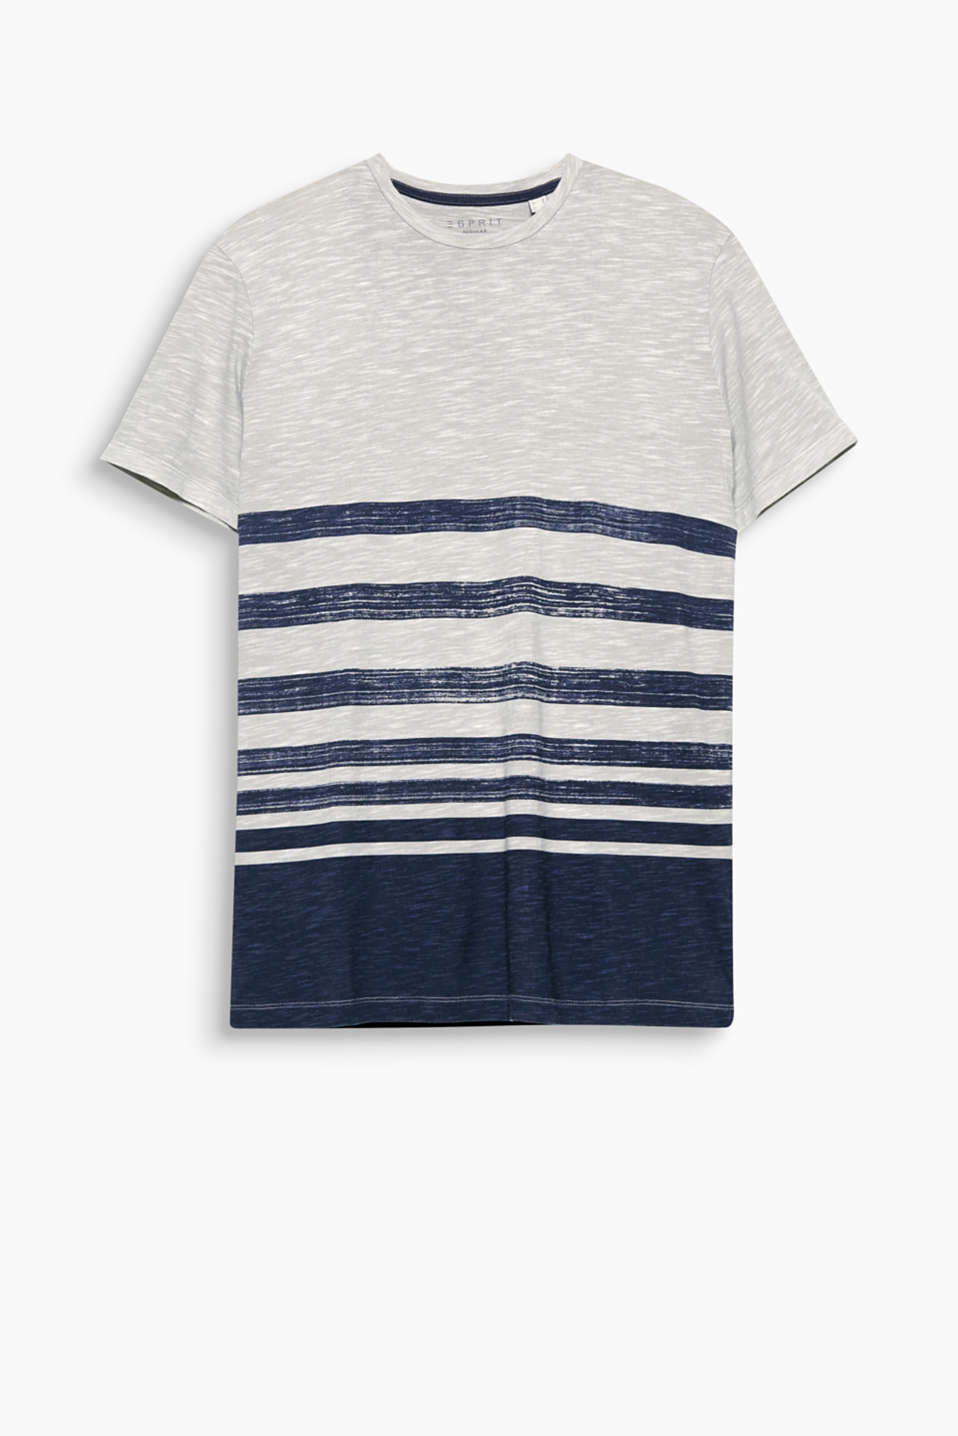 Casual slub T-shirt with a fine texture in pure cotton with positioned stripes